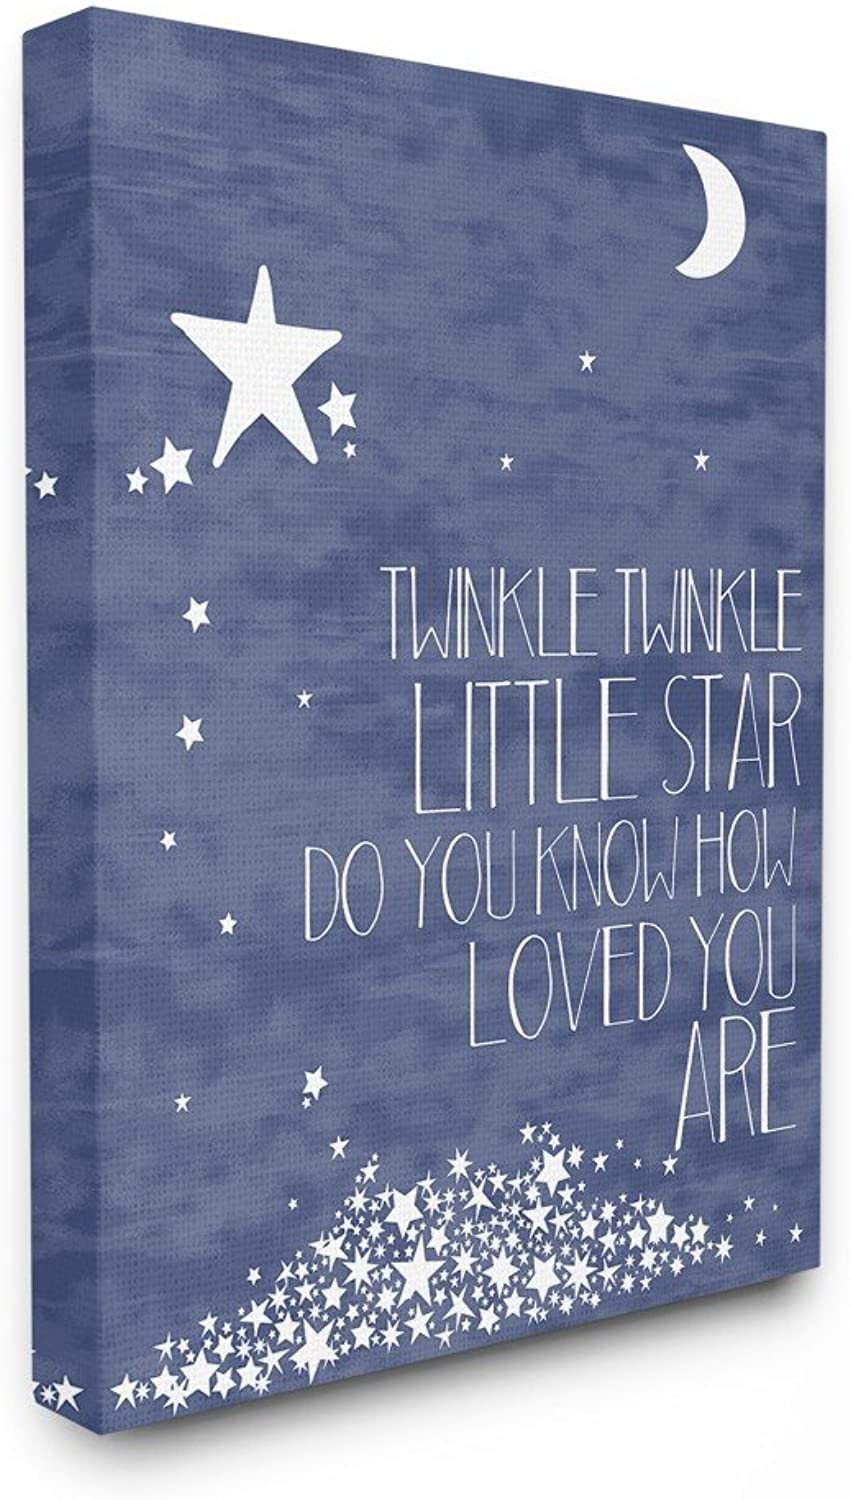 The Kids Room by Stupell Navy Textural Twinkle Little Star Typography Oversized Stretched Canvas Wall Art, 24 x 1.5 x 30, Proudly Made in USA